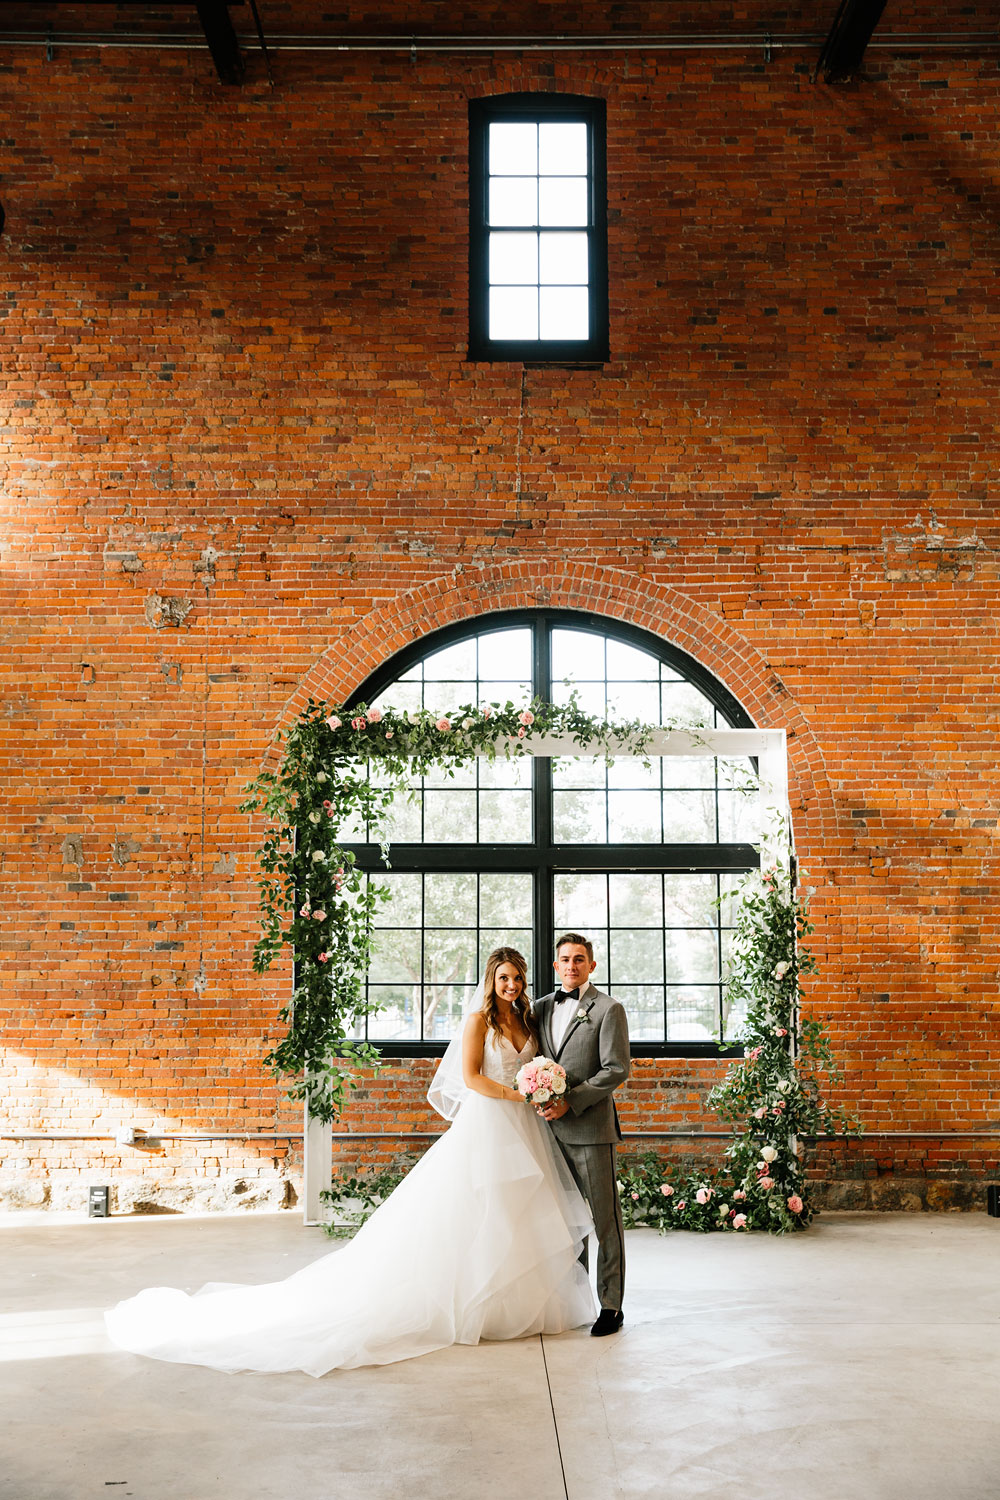 tenk-west-bank-flats-photography-wedding-photographers-in-cleveland-downtown-industrial-147.jpg